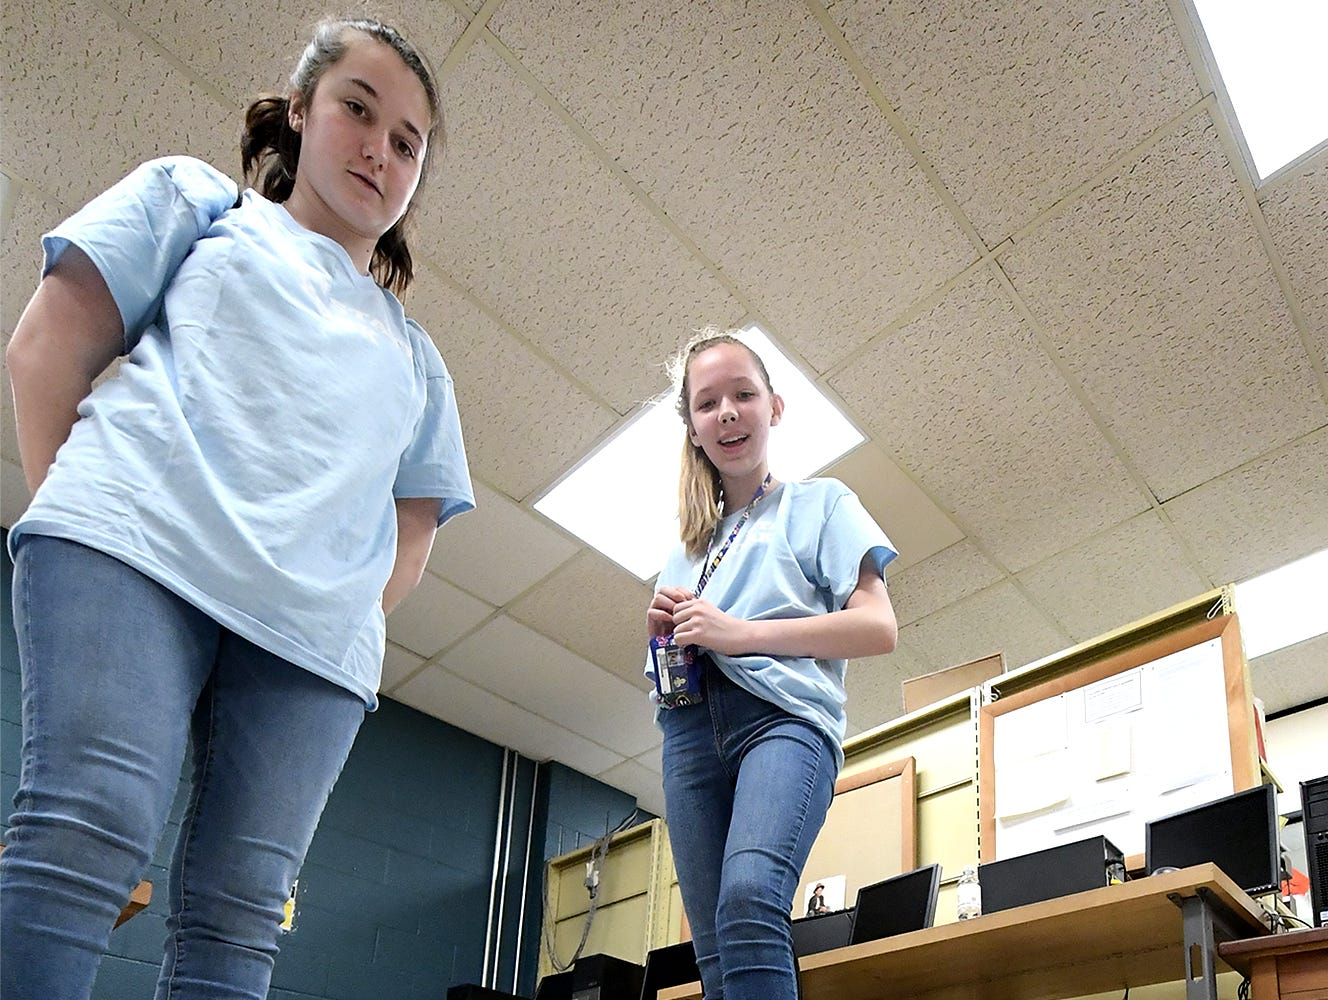 Saint Theresa School studentw Melissa Zack, left, and Katheryn Samsom test their robotic vehicle on a course during the Robogirl workshop at the Pathways to Your Future: Exploring STEAM Careers event at Penn State York Friday, May 10, 2019. Over 200 seventh-grade girls from 28 area schools participated in the program which highlighted science, technology, engineering, art, and mathematics (STEAM) careers. Industry leaders administered the workshops during the program, which is in its 23rd year. Bill Kalina photo